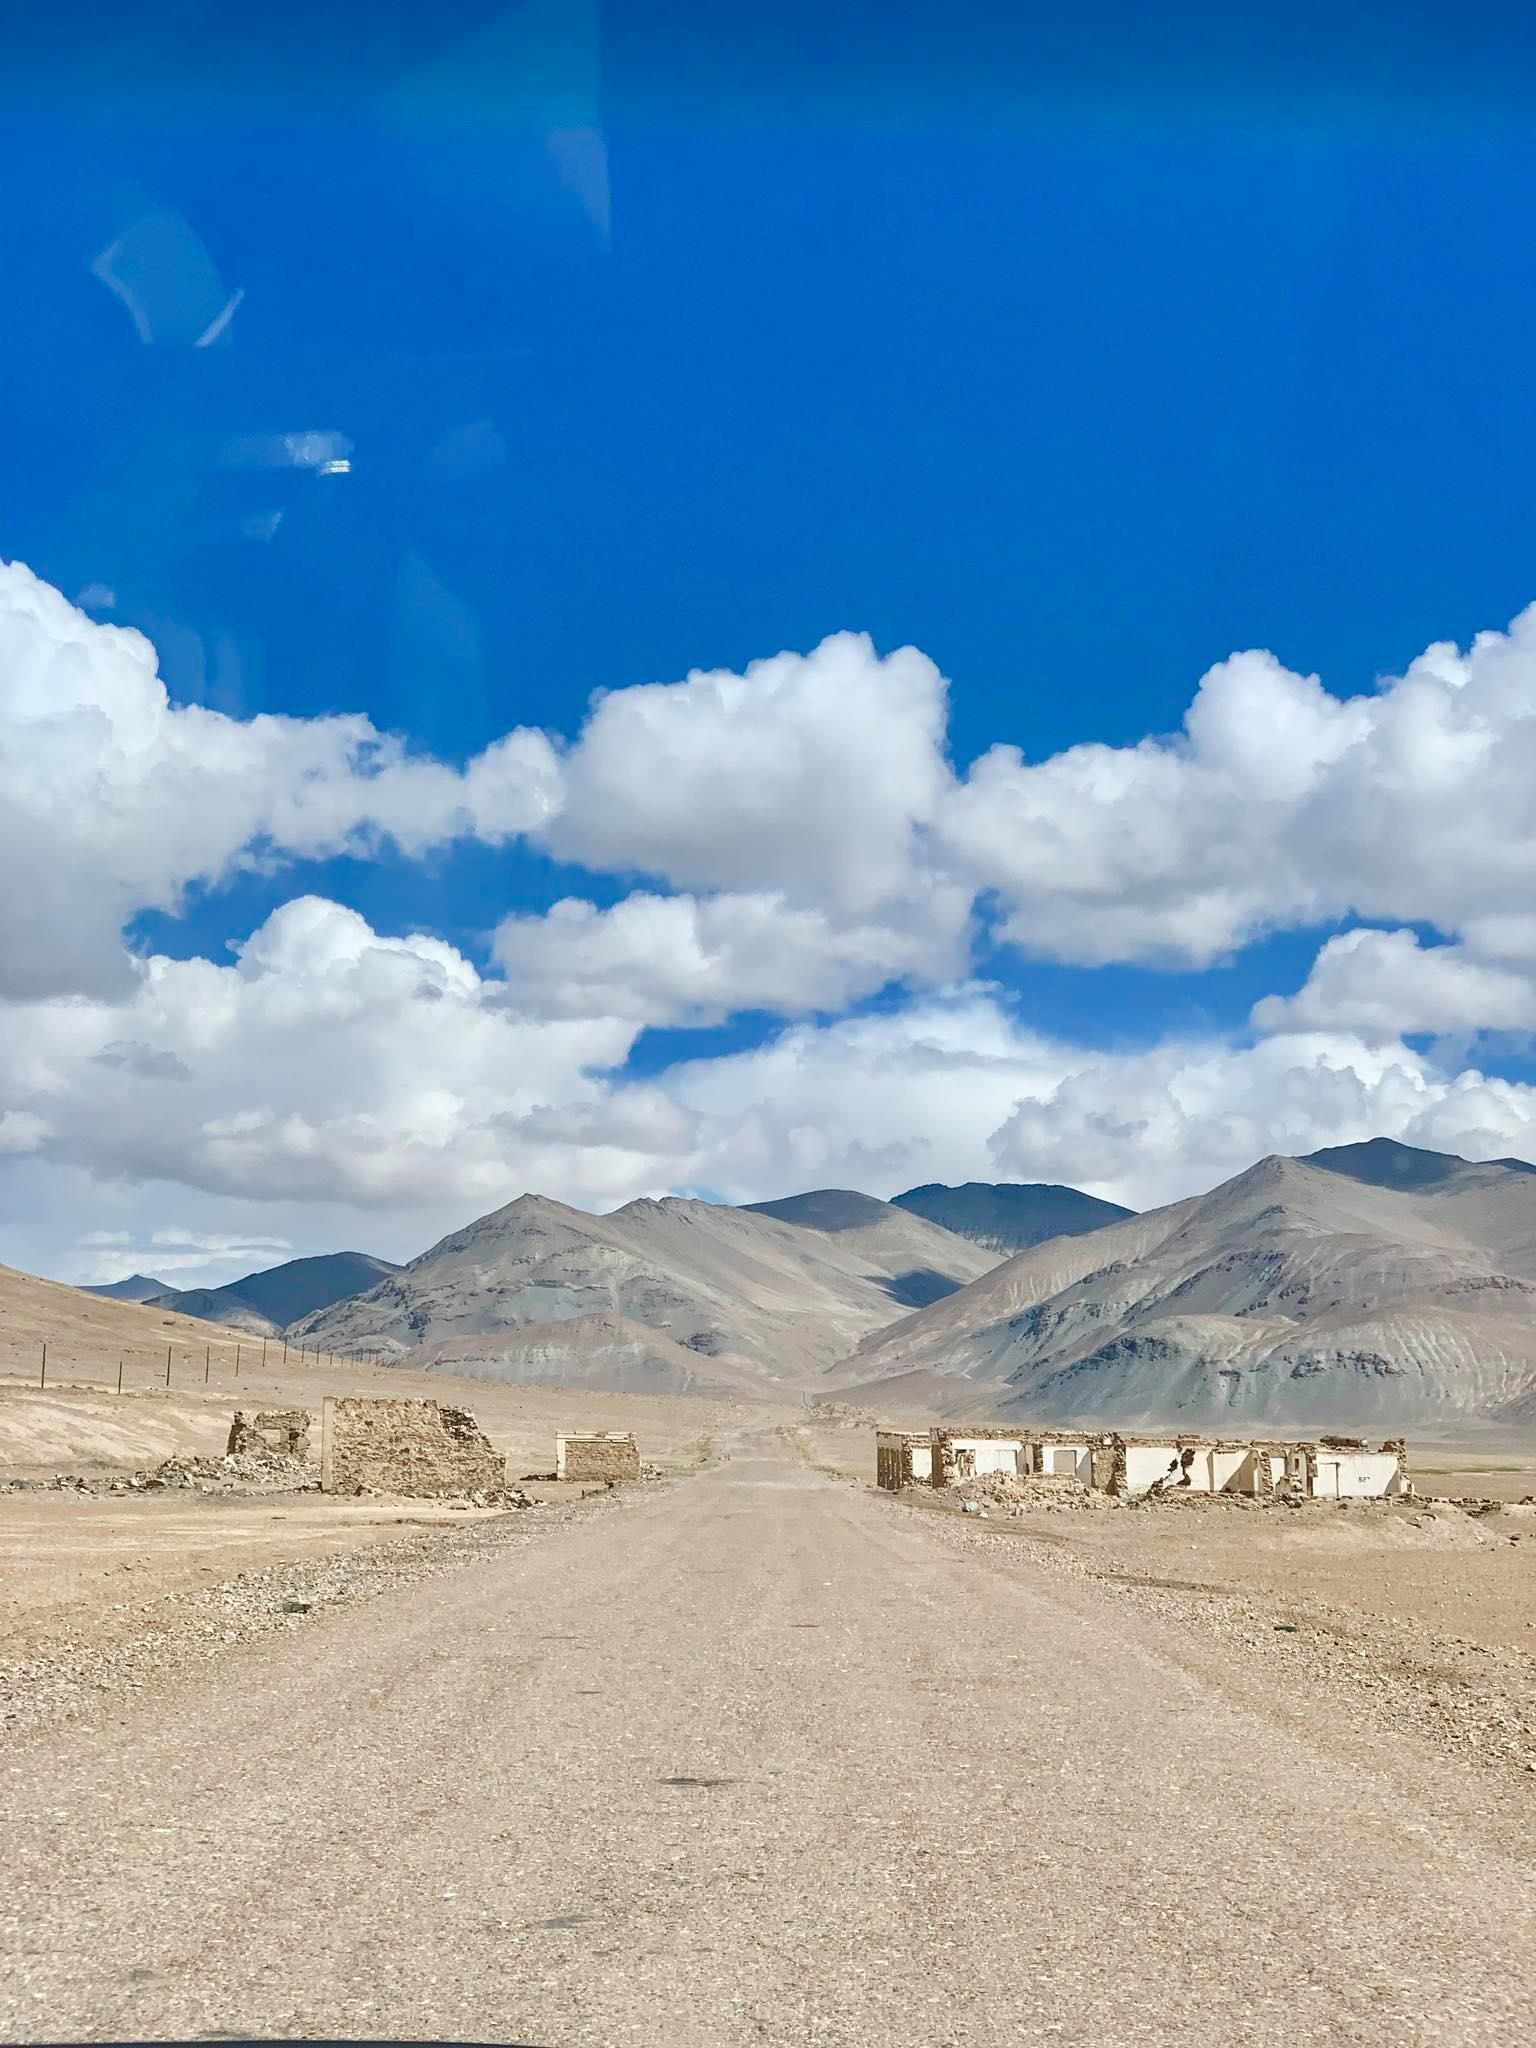 Kach Solo Travels in 2019 Last 8 days of Pamir Highway roadtrip with Paramount Journey7.jpg